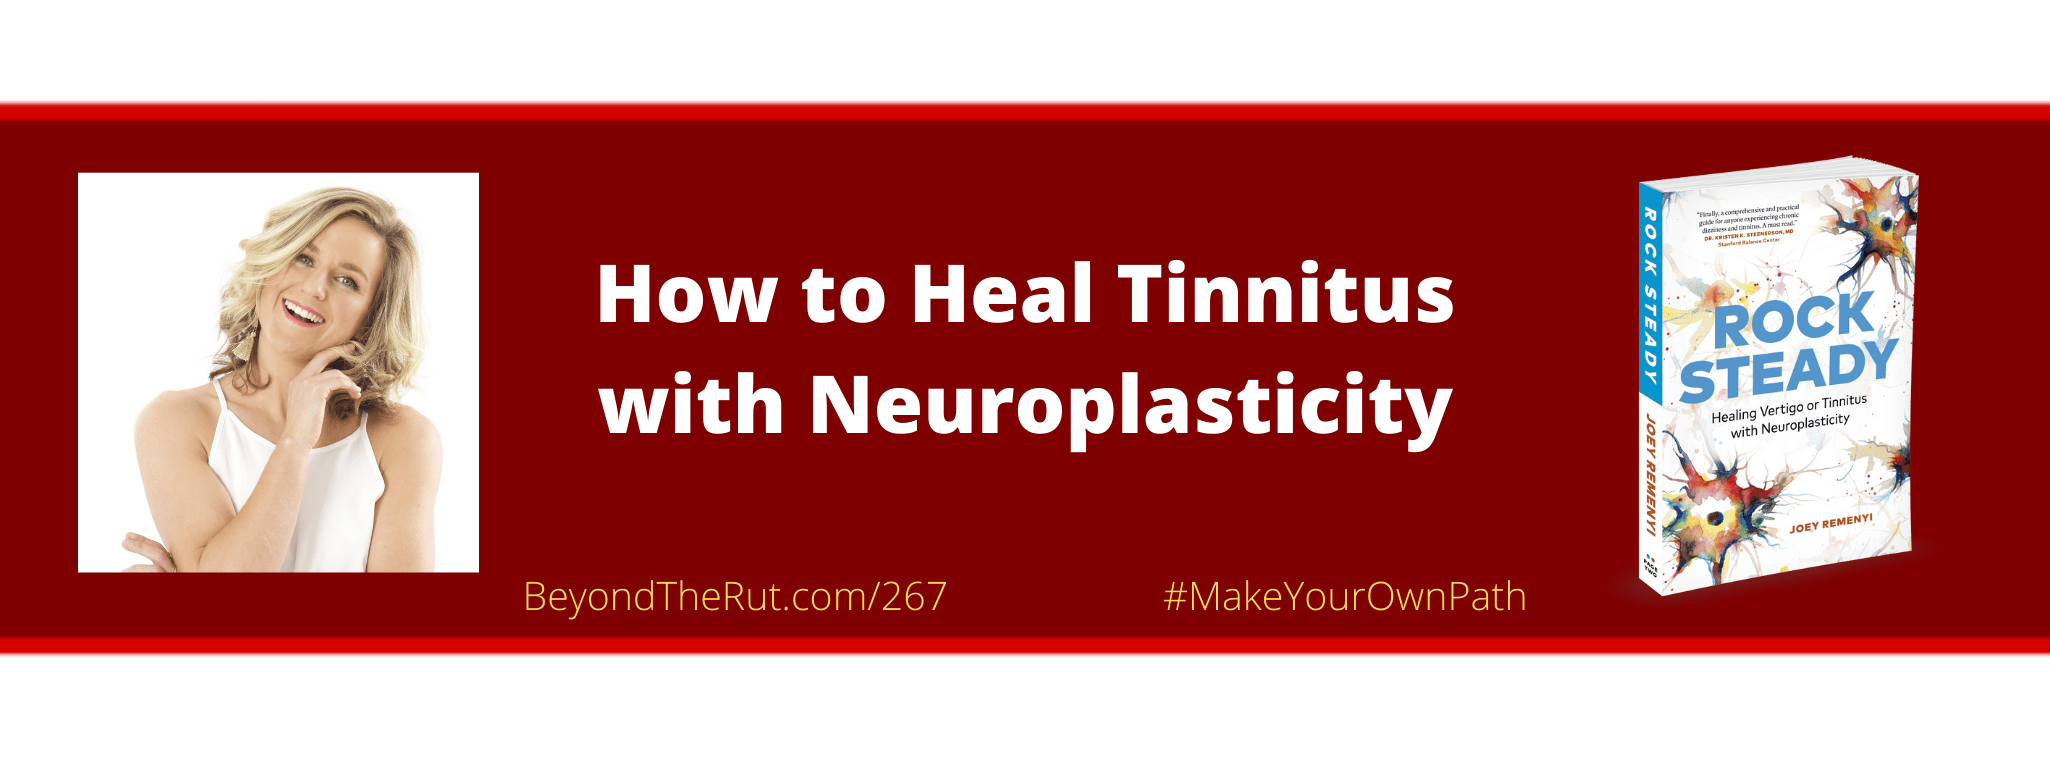 Joey Remenyi discusses how to heal tinnitus with neuroplasticity